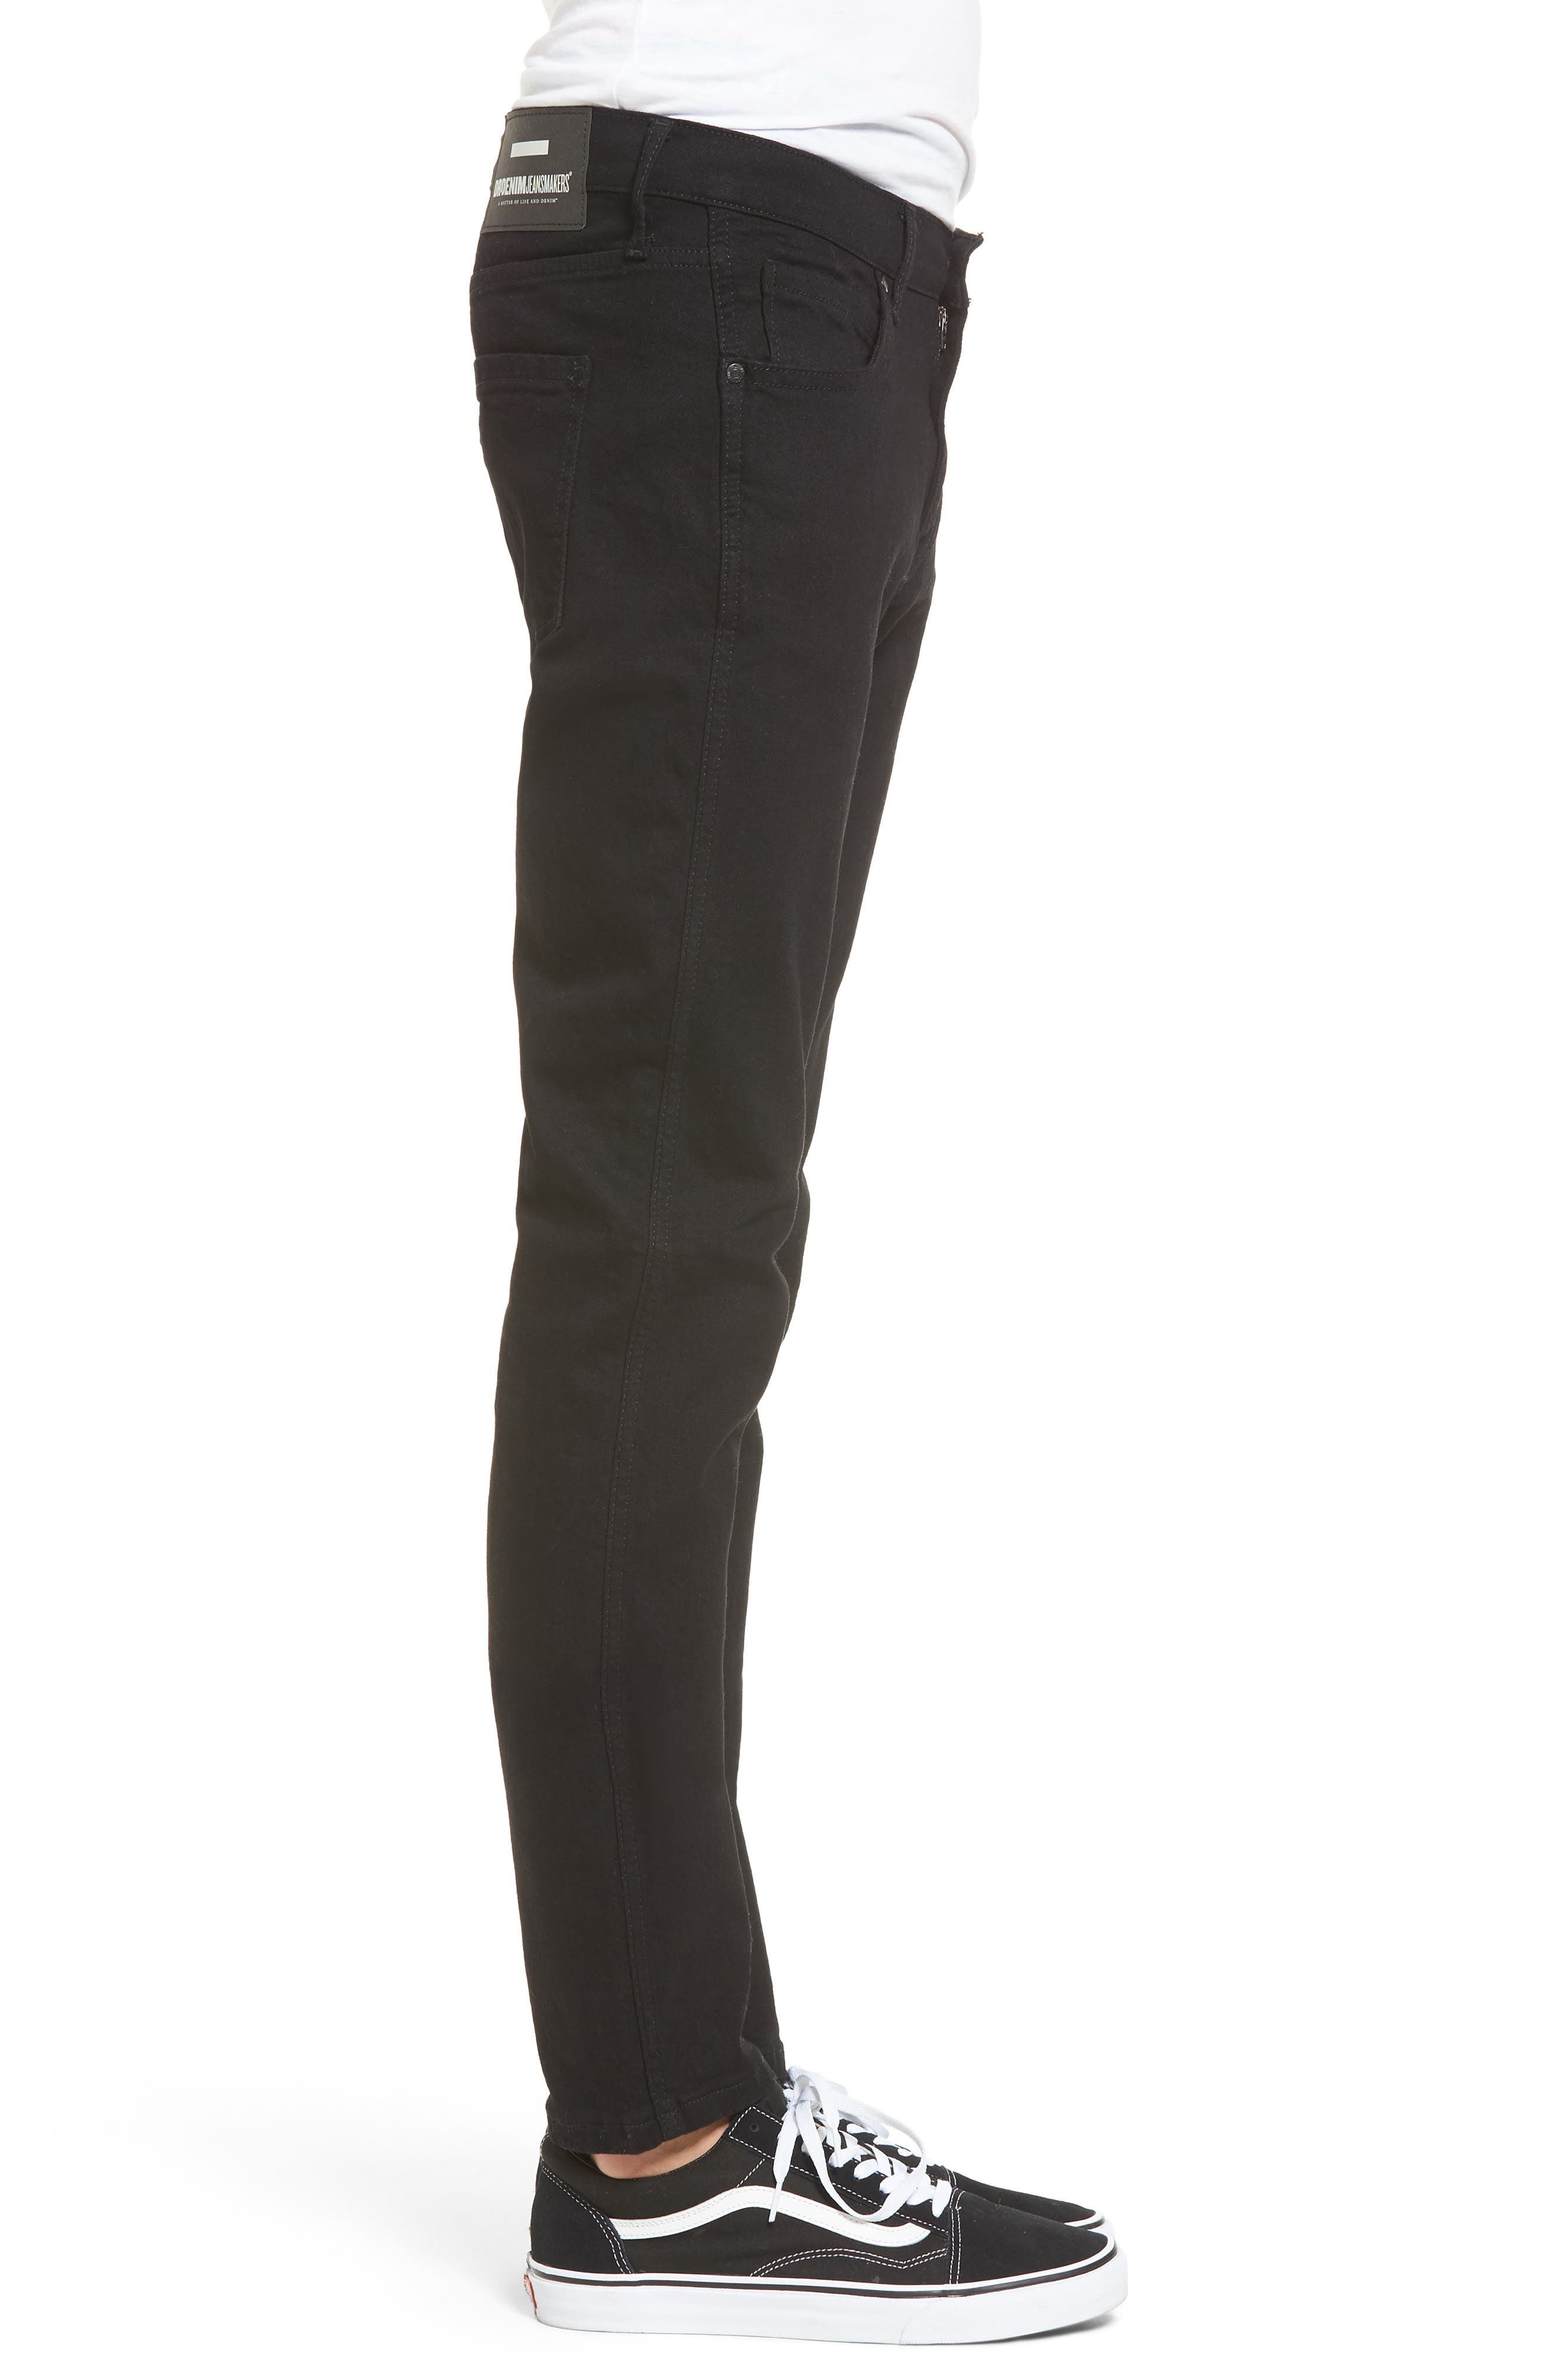 Snap Skinny Fit Jeans,                             Alternate thumbnail 3, color,                             ORGANIC BLACK